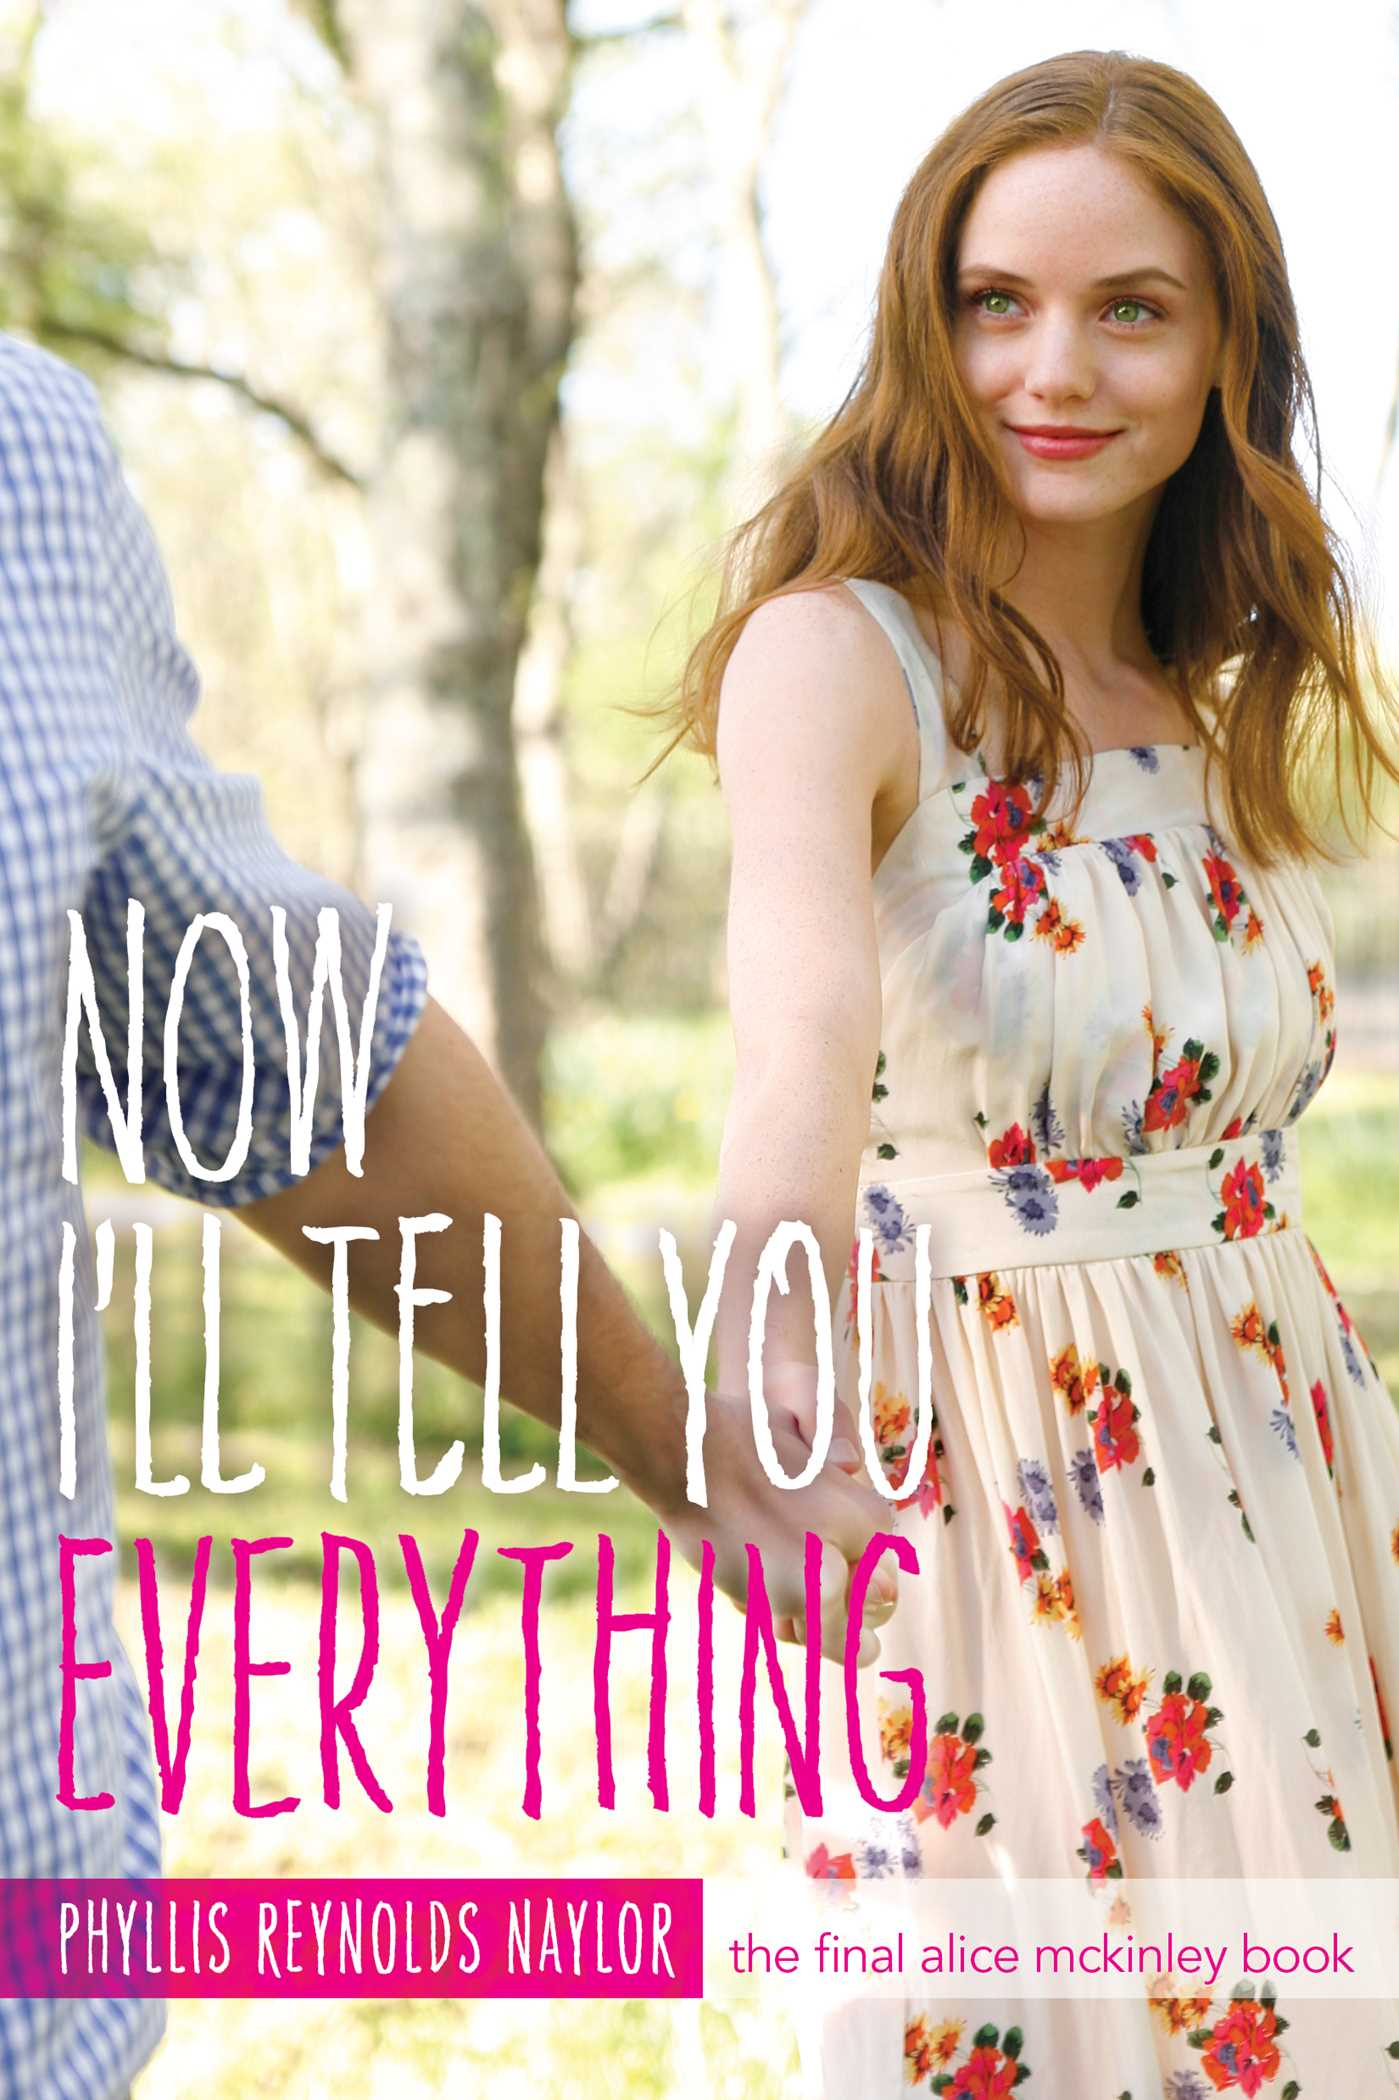 Now-ill-tell-you-everything-9781442445918_hr